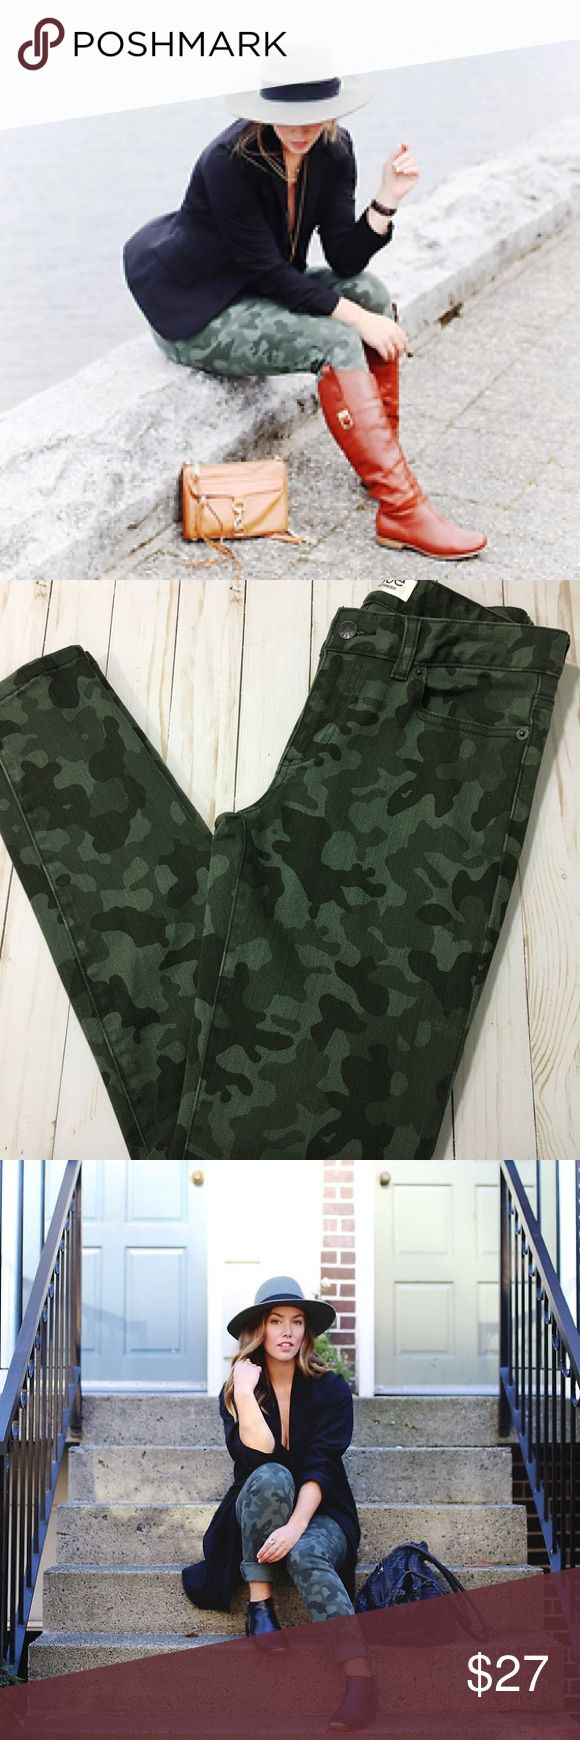 "Joe Fresh camo skinny jeans Joe Fresh camo skinny jeans. Approx Measurements: 15"" waist when laid flat 8.5"" rise 29"" inseam 5"" leg opening.  EUC. Joe Fresh Jeans Skinny"